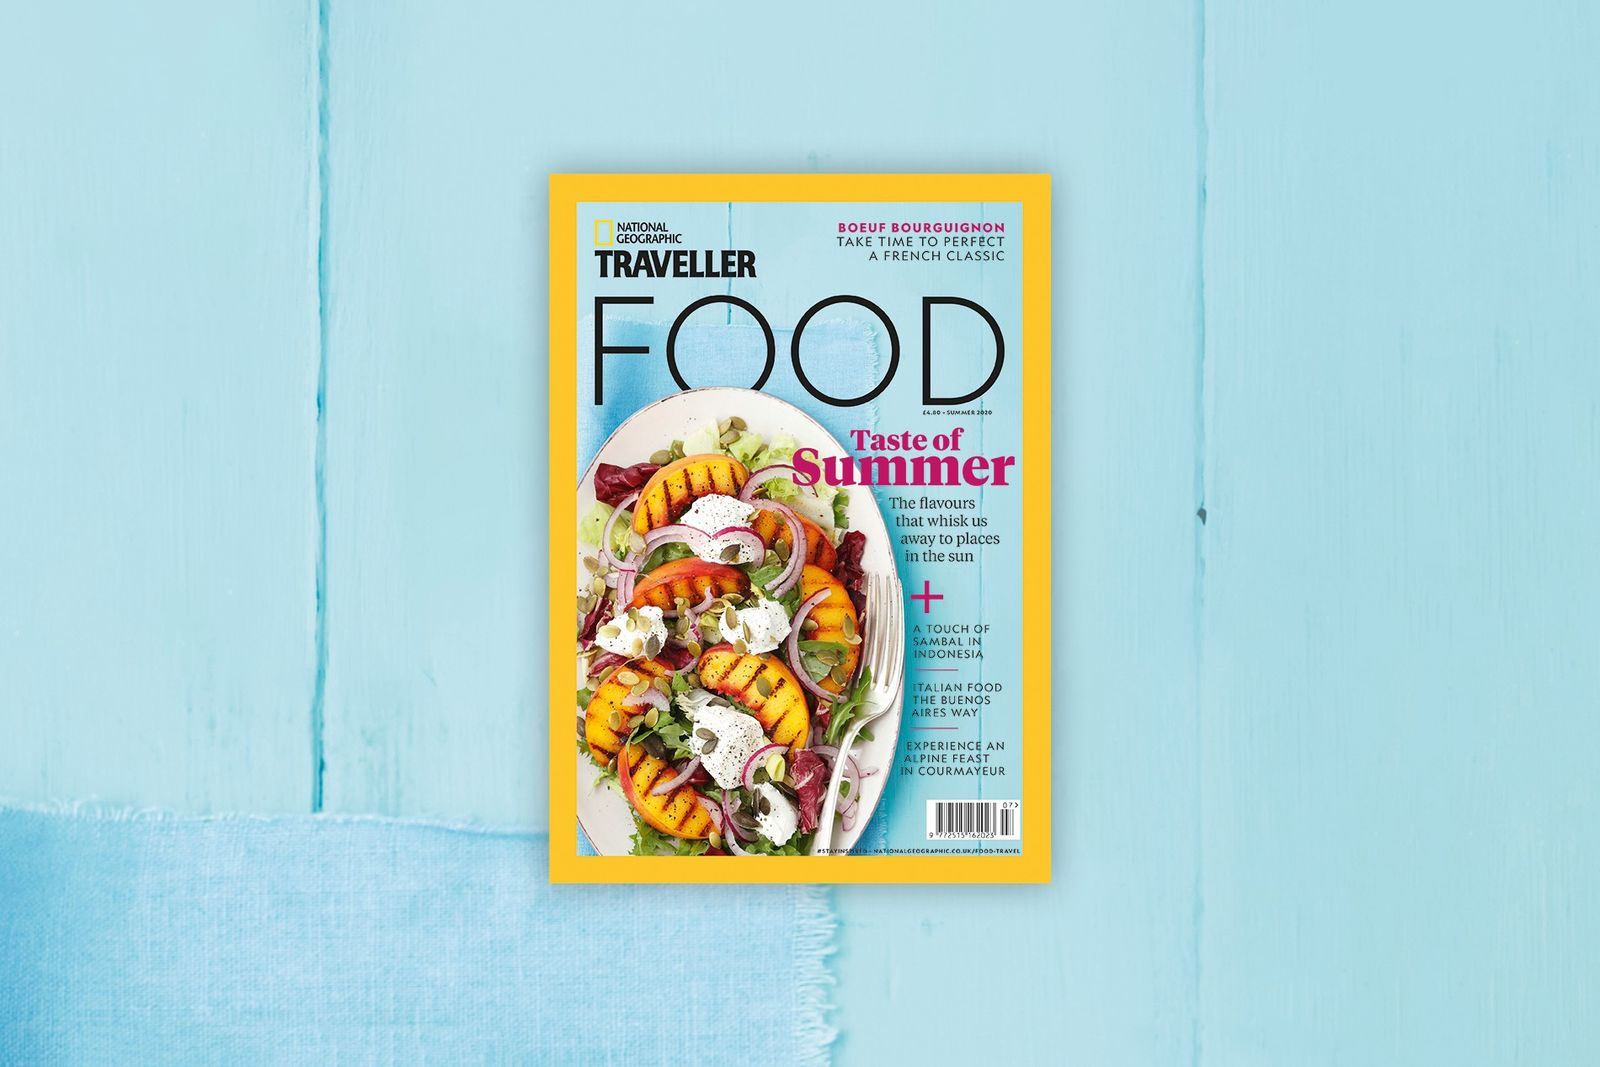 Inside the new issue of National Geographic Traveller Food